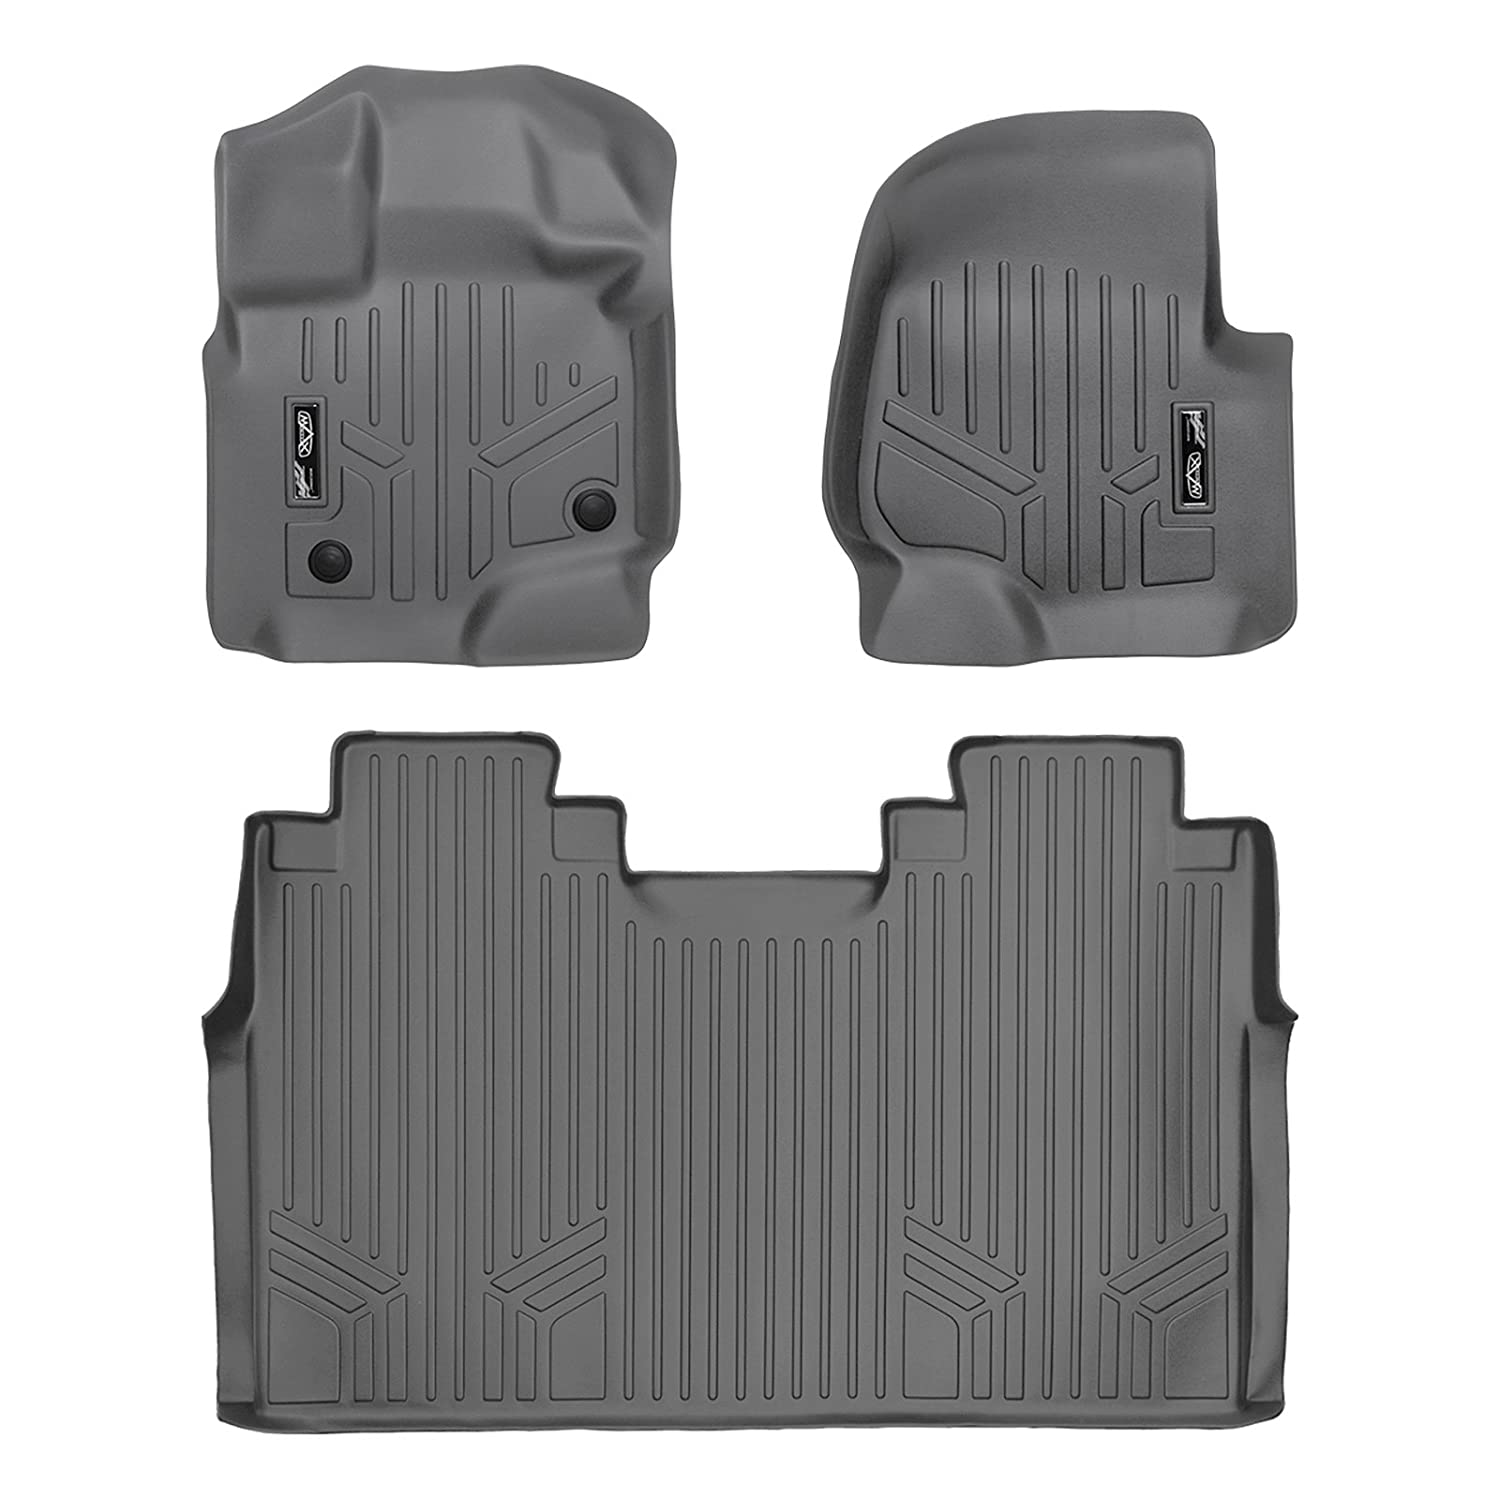 MAXLINER A2167/B2188 Floor Mats for Ford F-150 Super Crew with Front Bench Seats, 2015-2017 Complete Set, Grey